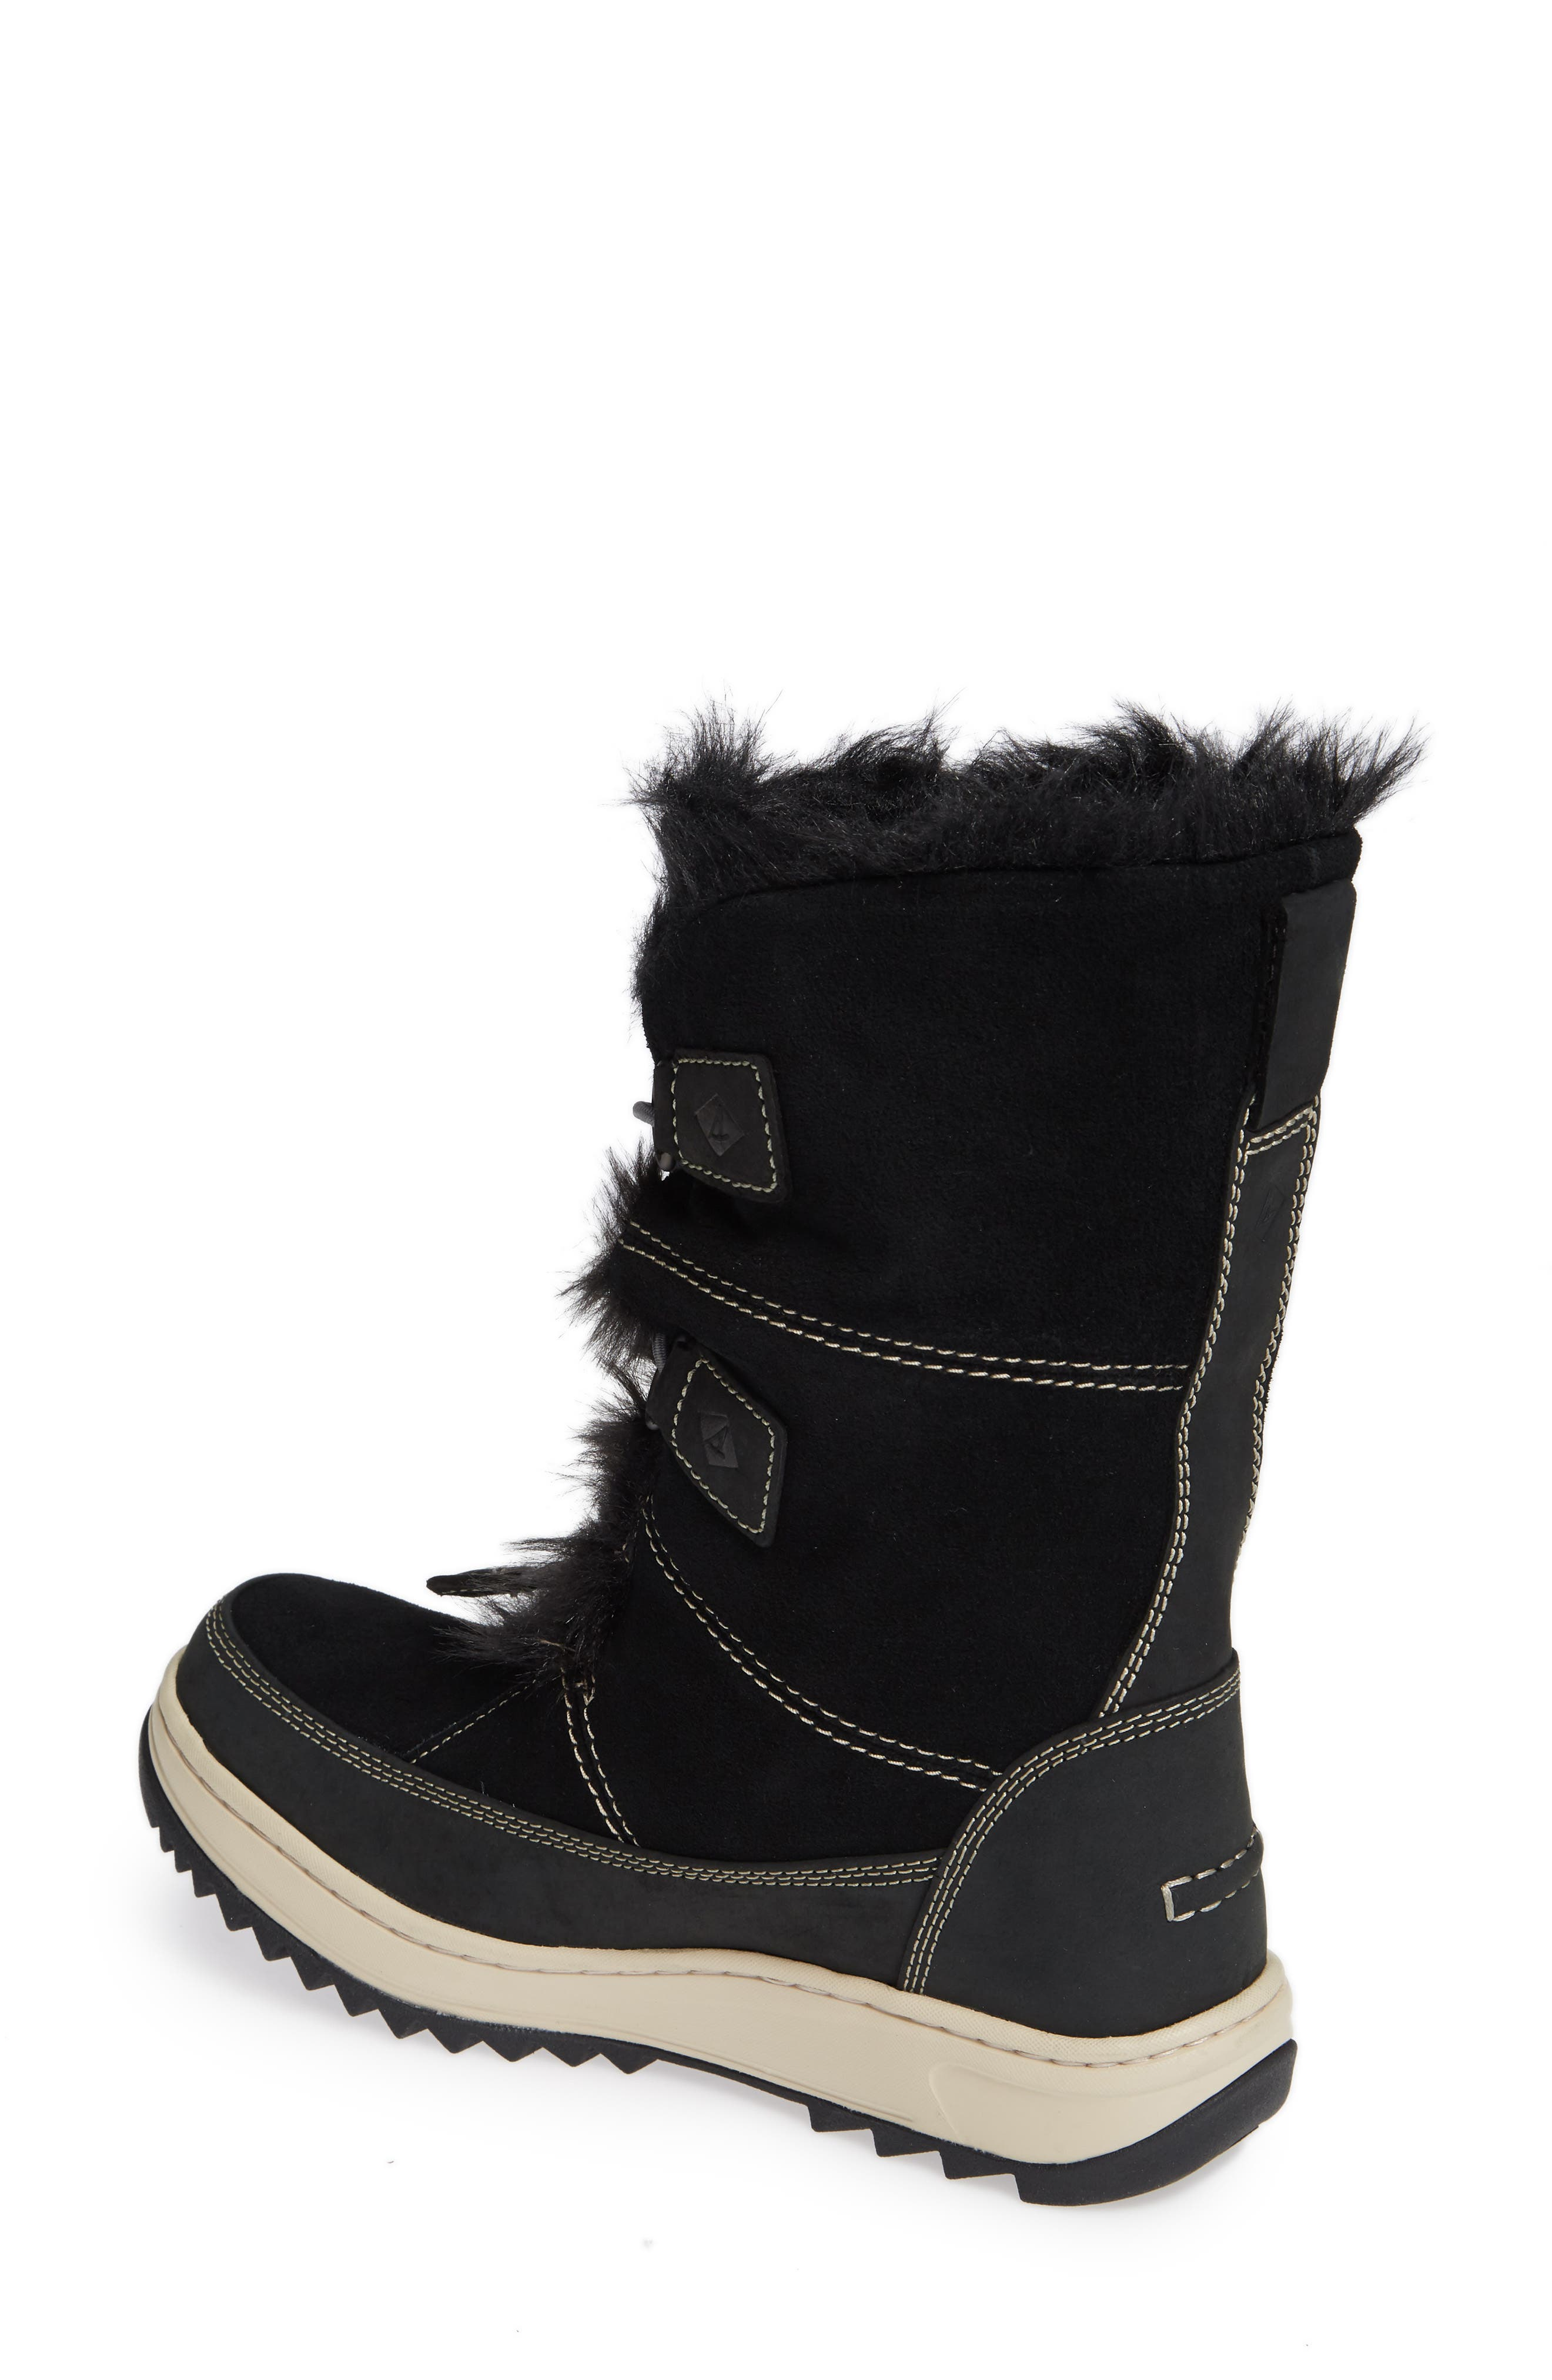 SPERRY,                             Powder Valley Vibram<sup>®</sup> Arctic Grip Waterproof Boot,                             Alternate thumbnail 2, color,                             001